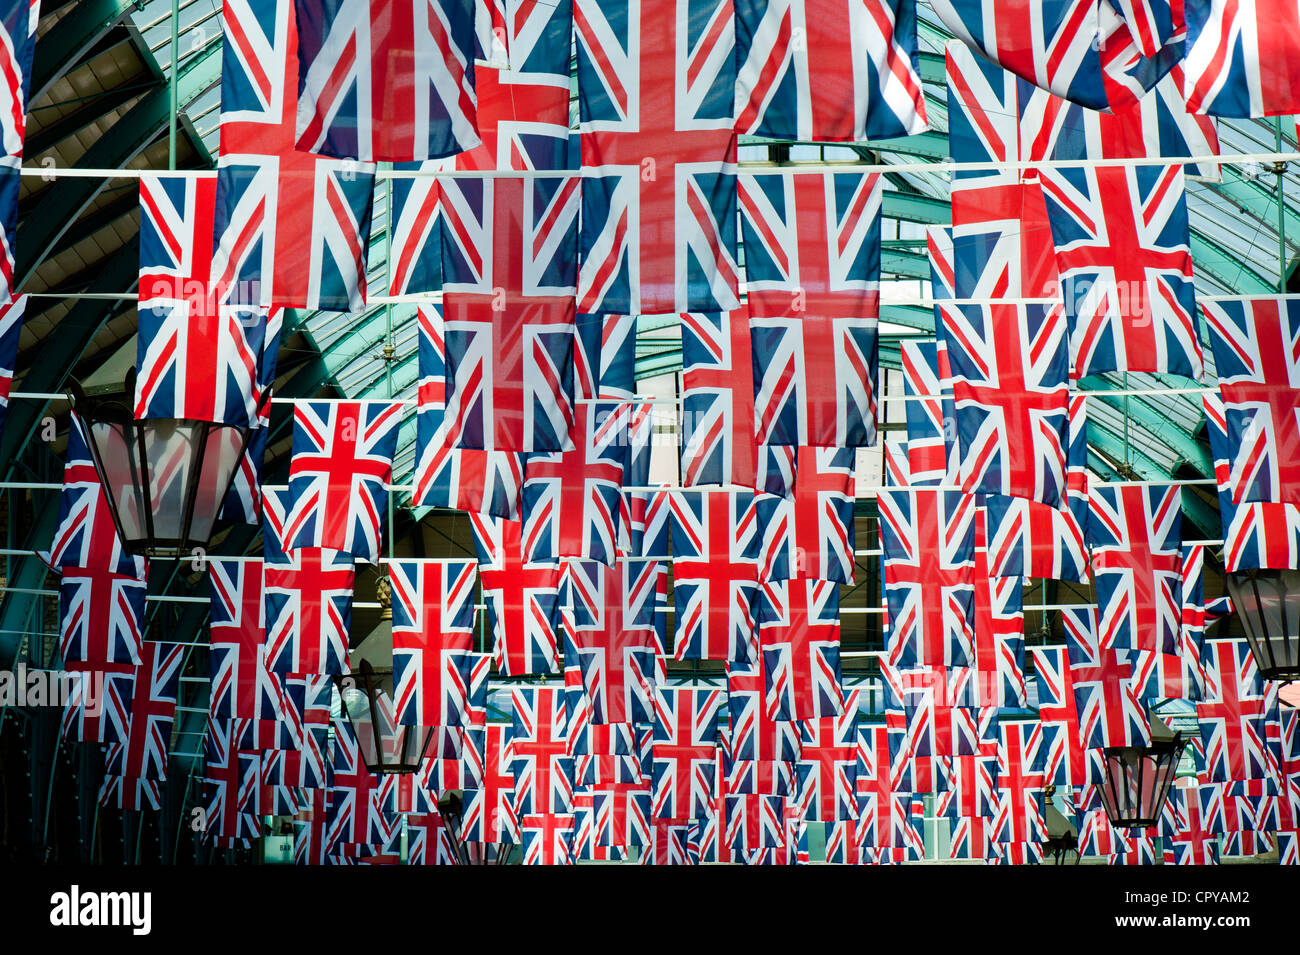 Apple Market dacorated with Union Jacks, Covent Garden, London, United Kingdom - Stock Image